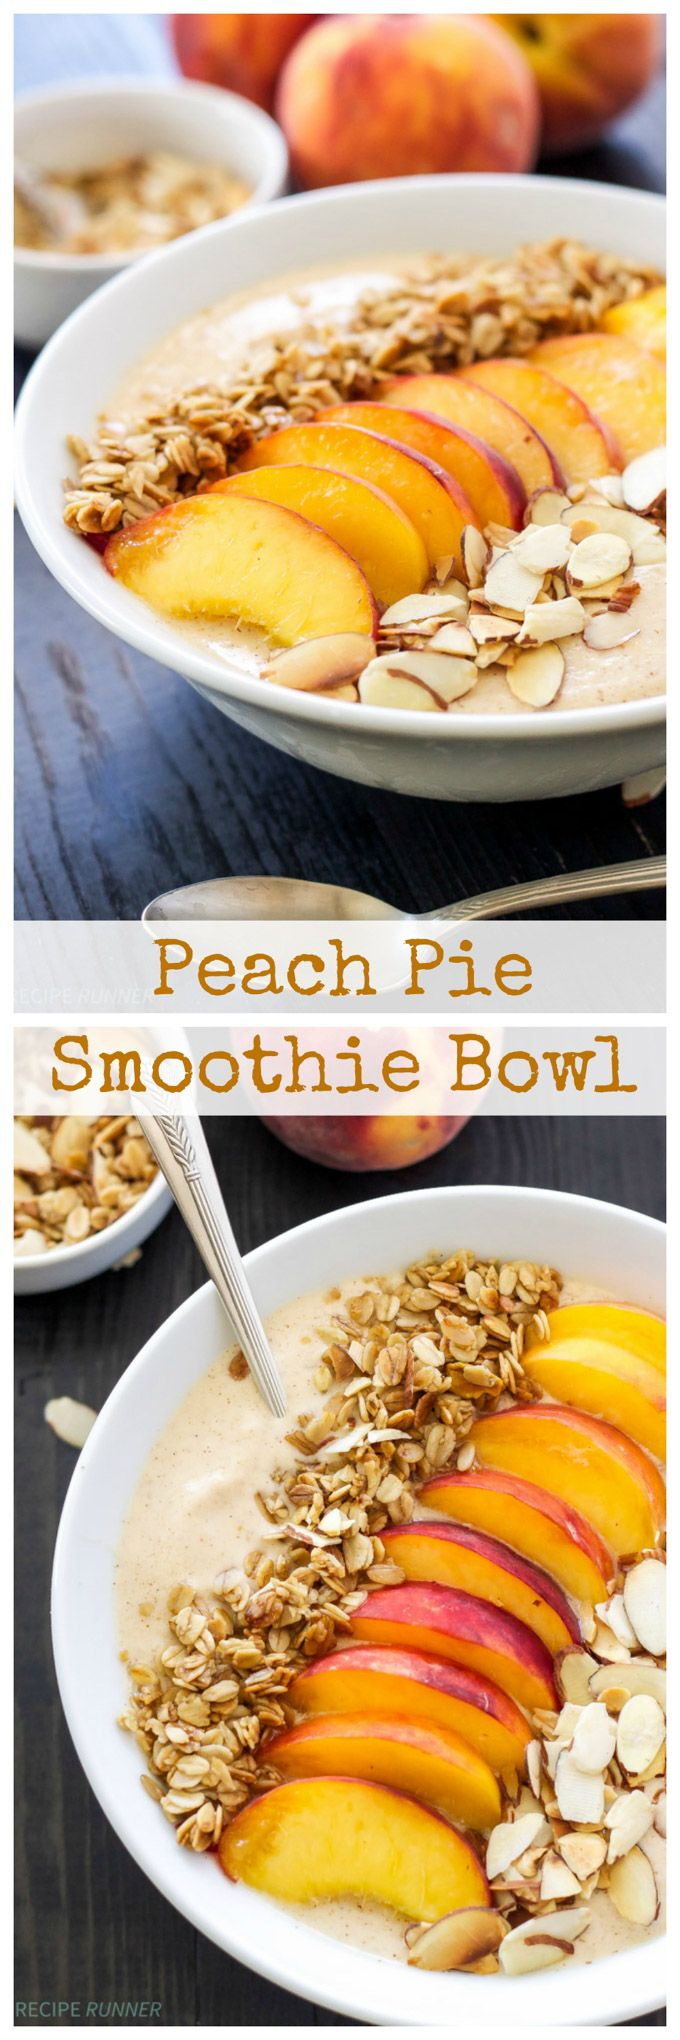 Peach Pie Smoothie Bowl by spoonfulofflavor: Thick, creamy, full of protein, and tastes just like a piece of peach pie! #Breakfast #Smoothie_Bowl #Peach #Healthy